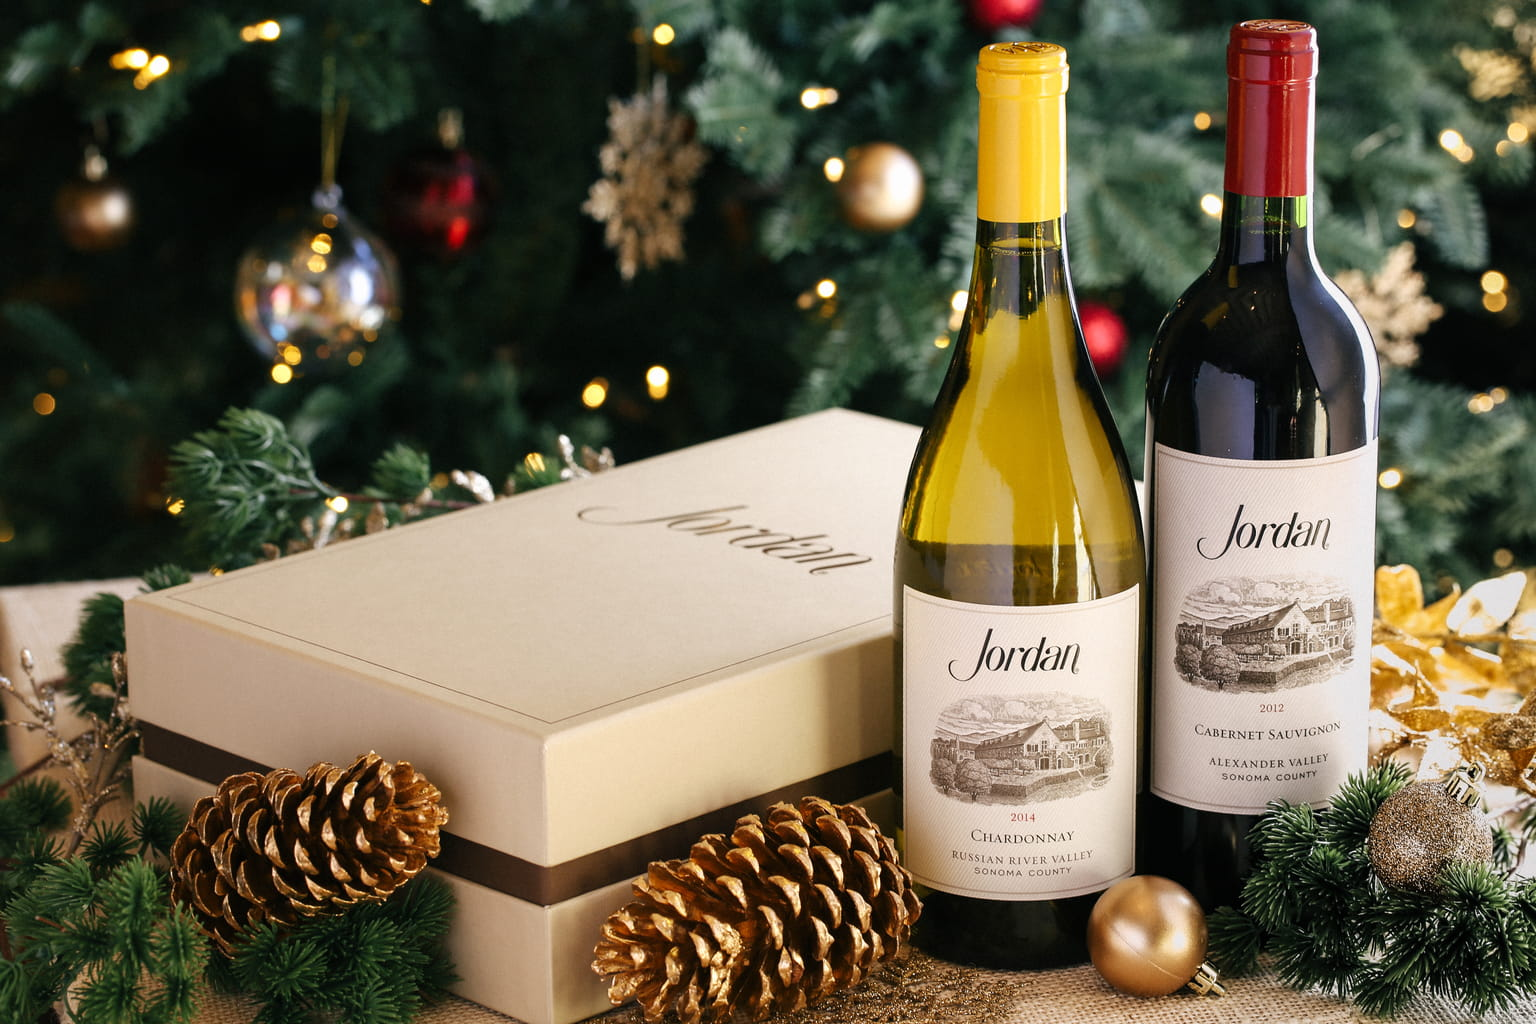 Pamper clients and loved ones with an elegant Christmas gift idea: a Jordan Cabernet Sauvignon or Chardonnay wine gift box. Available exclusively from Jordan Winery.